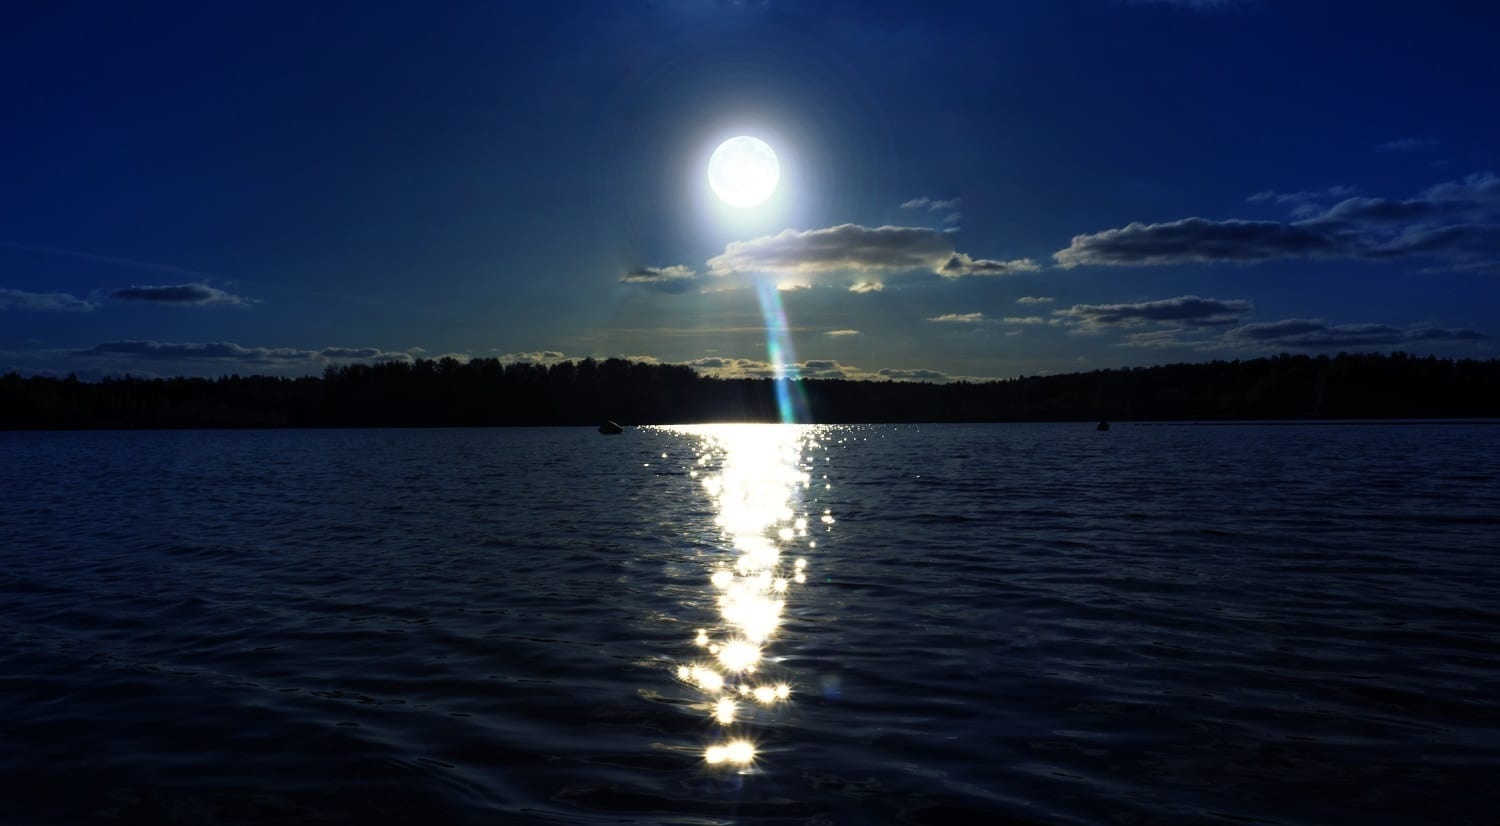 Full Moonlit lake: ID 104503135 © Sjstudio357 | Dreamstime.com